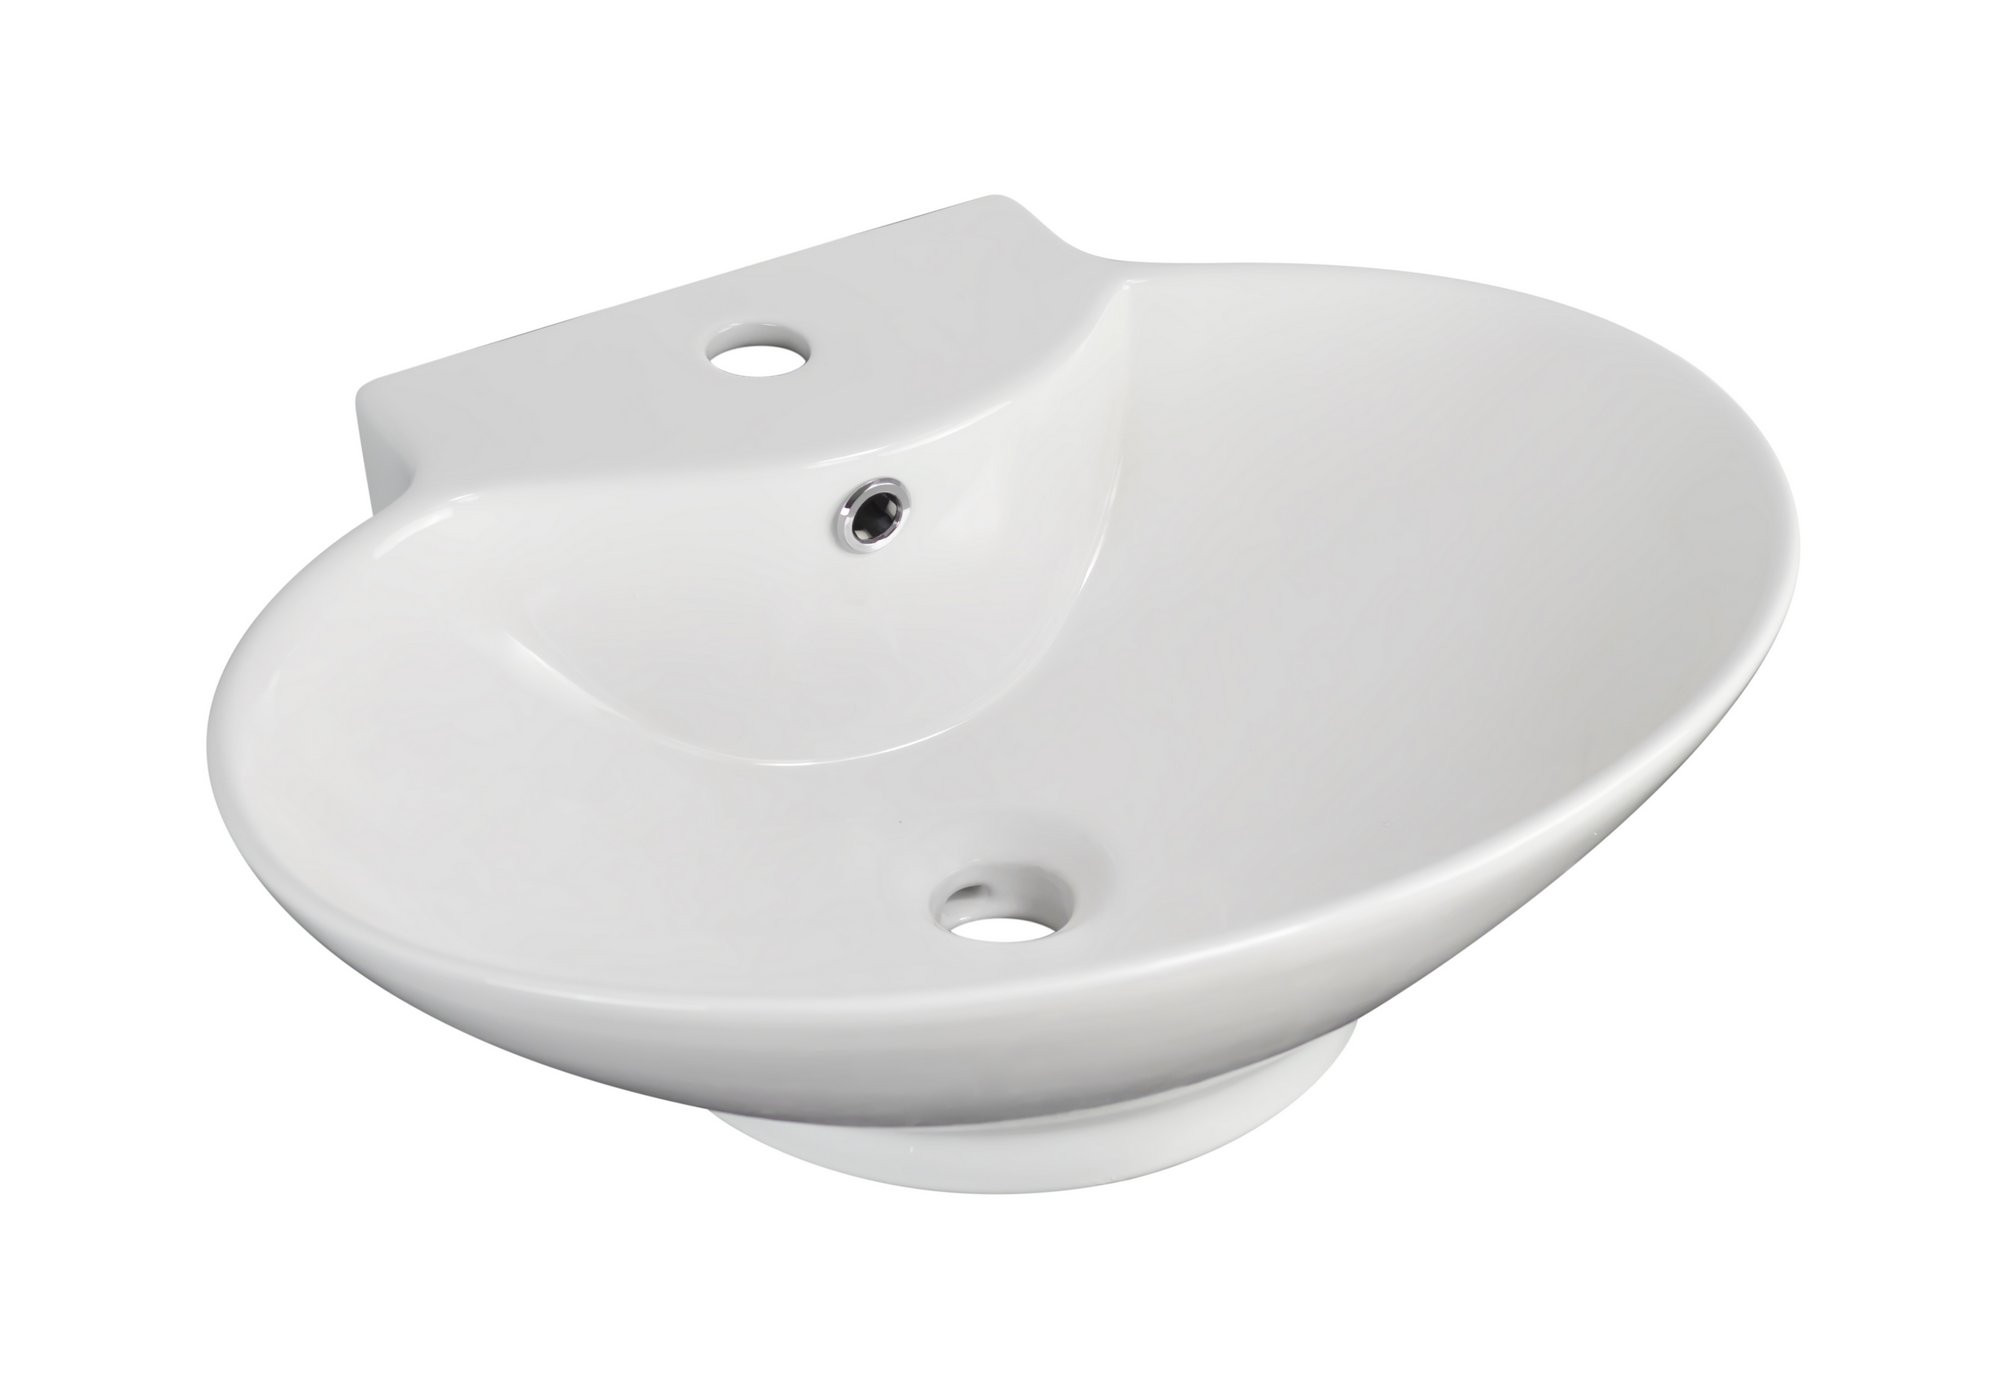 American Imagination AI-703 Wall Mount Oval Vessel In White Color For Single Hole Faucet